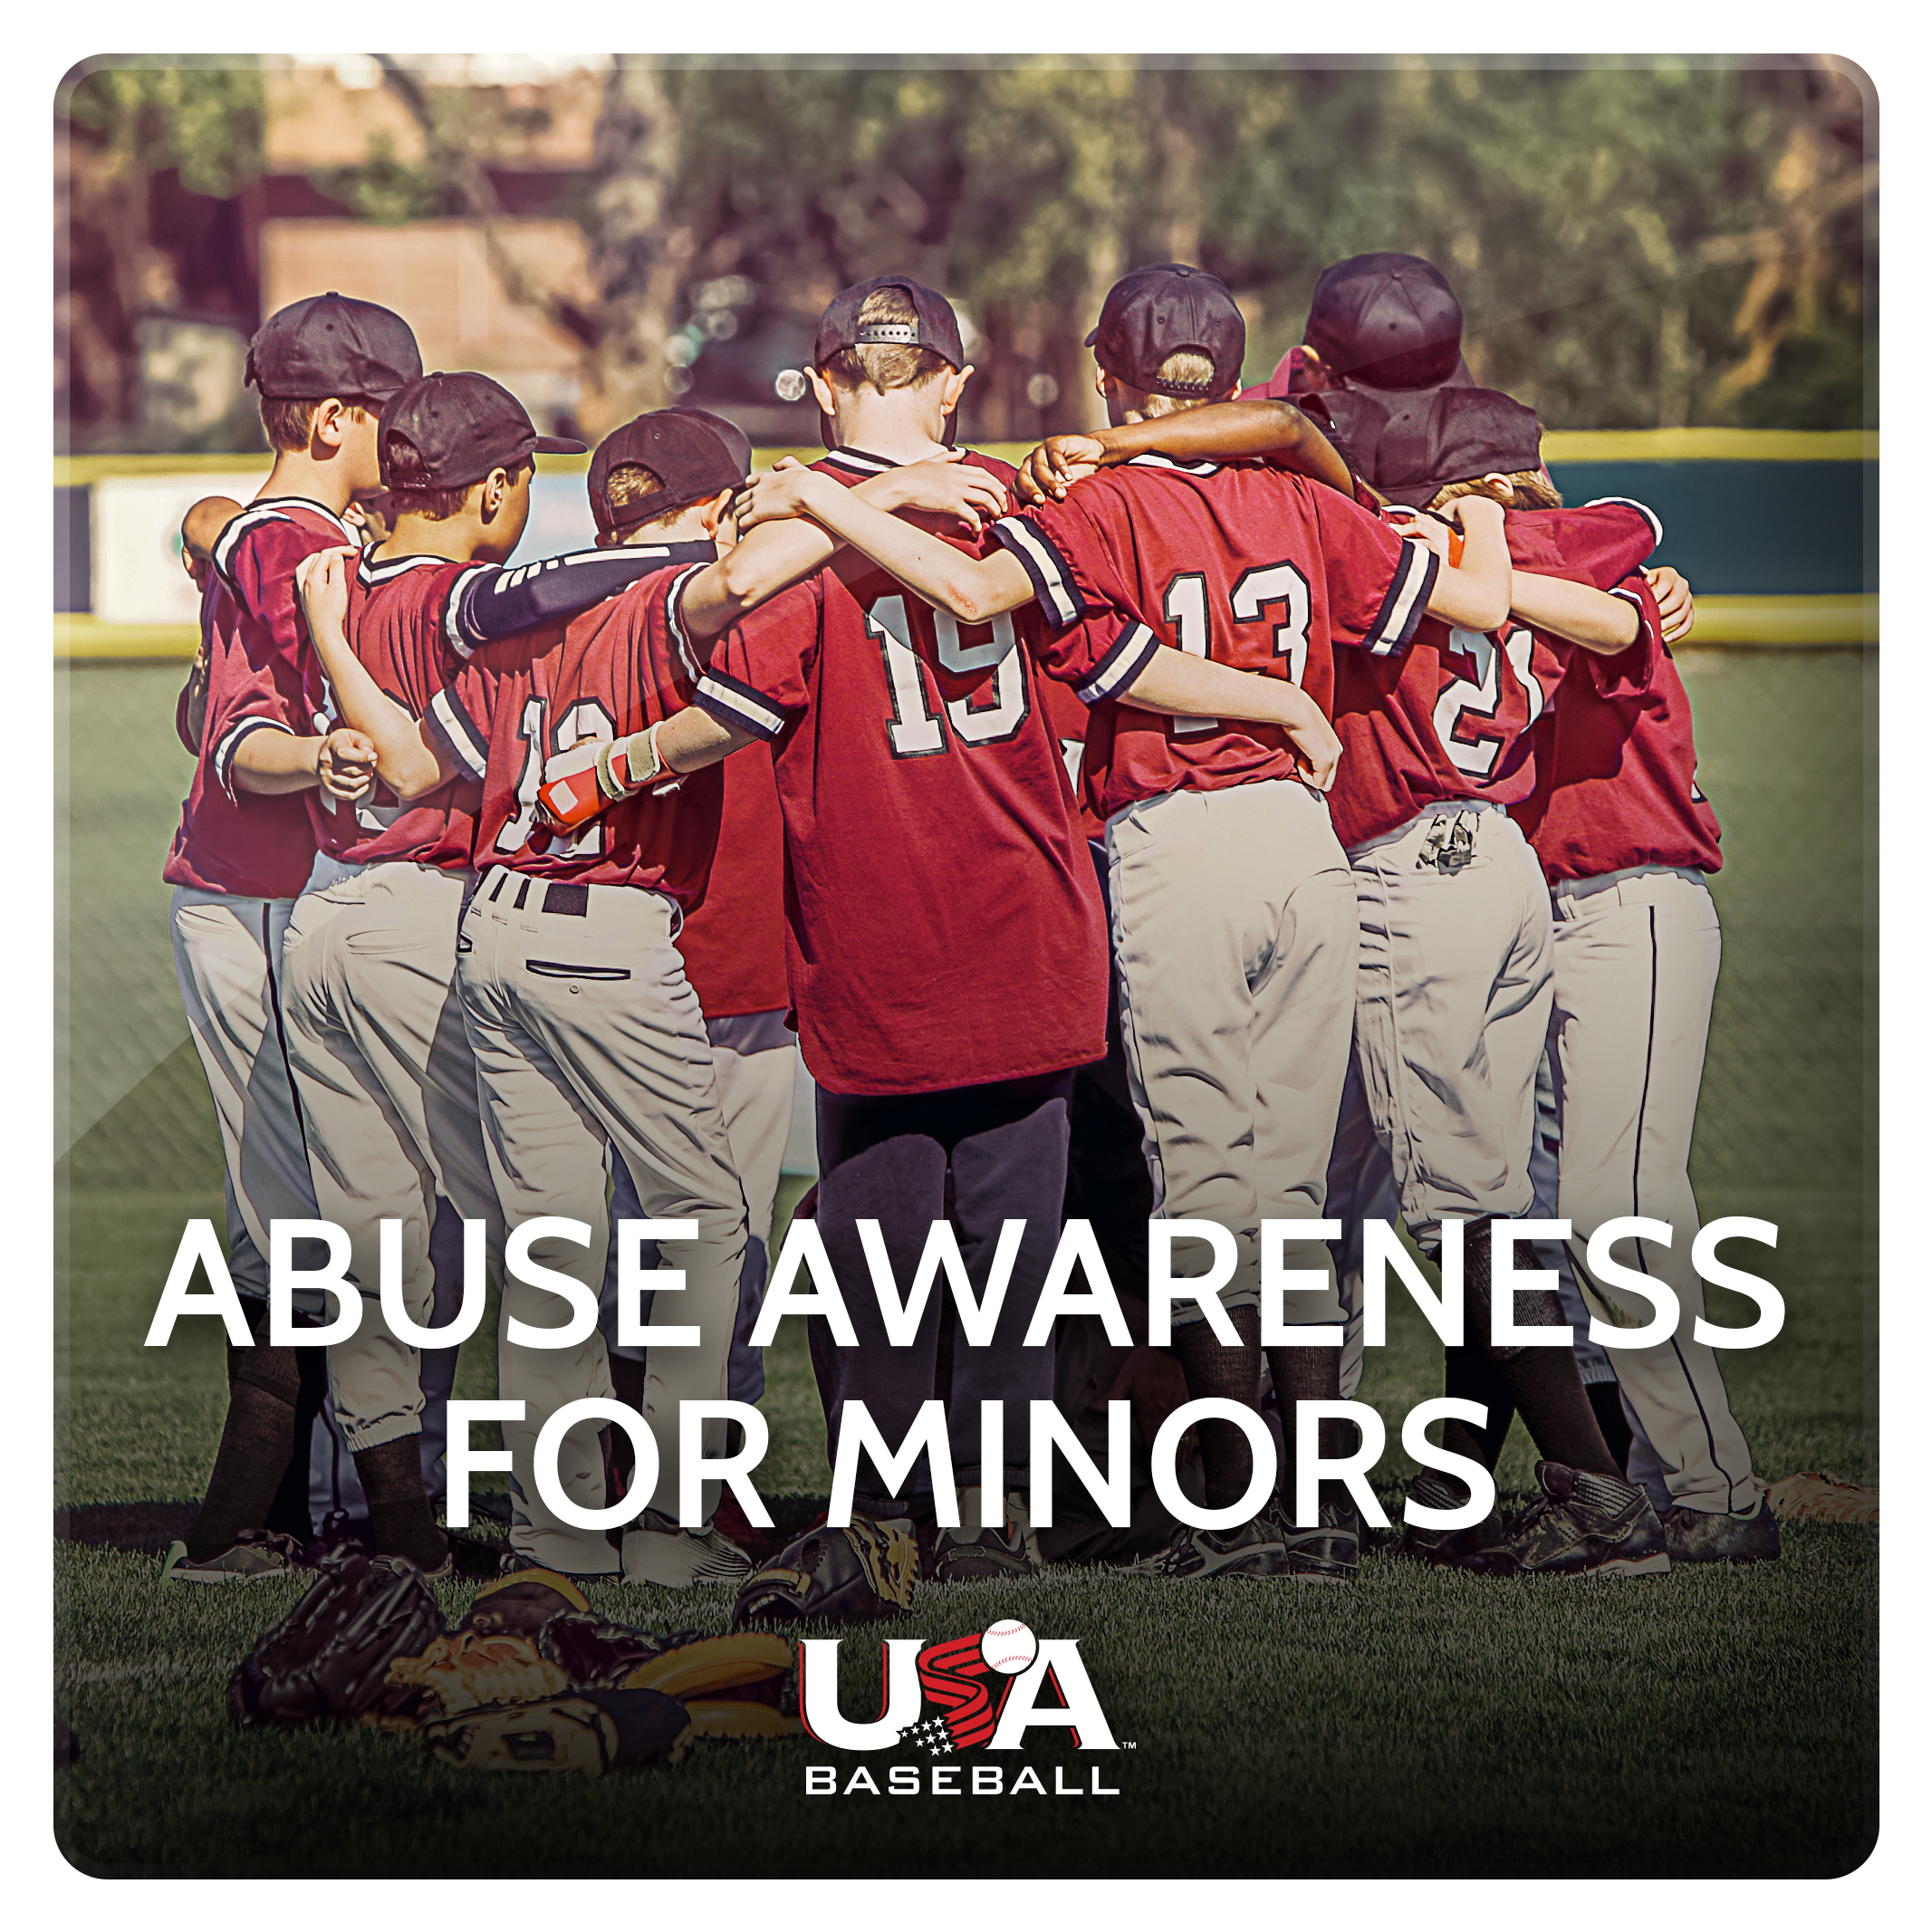 Abuse Awareness for Minors